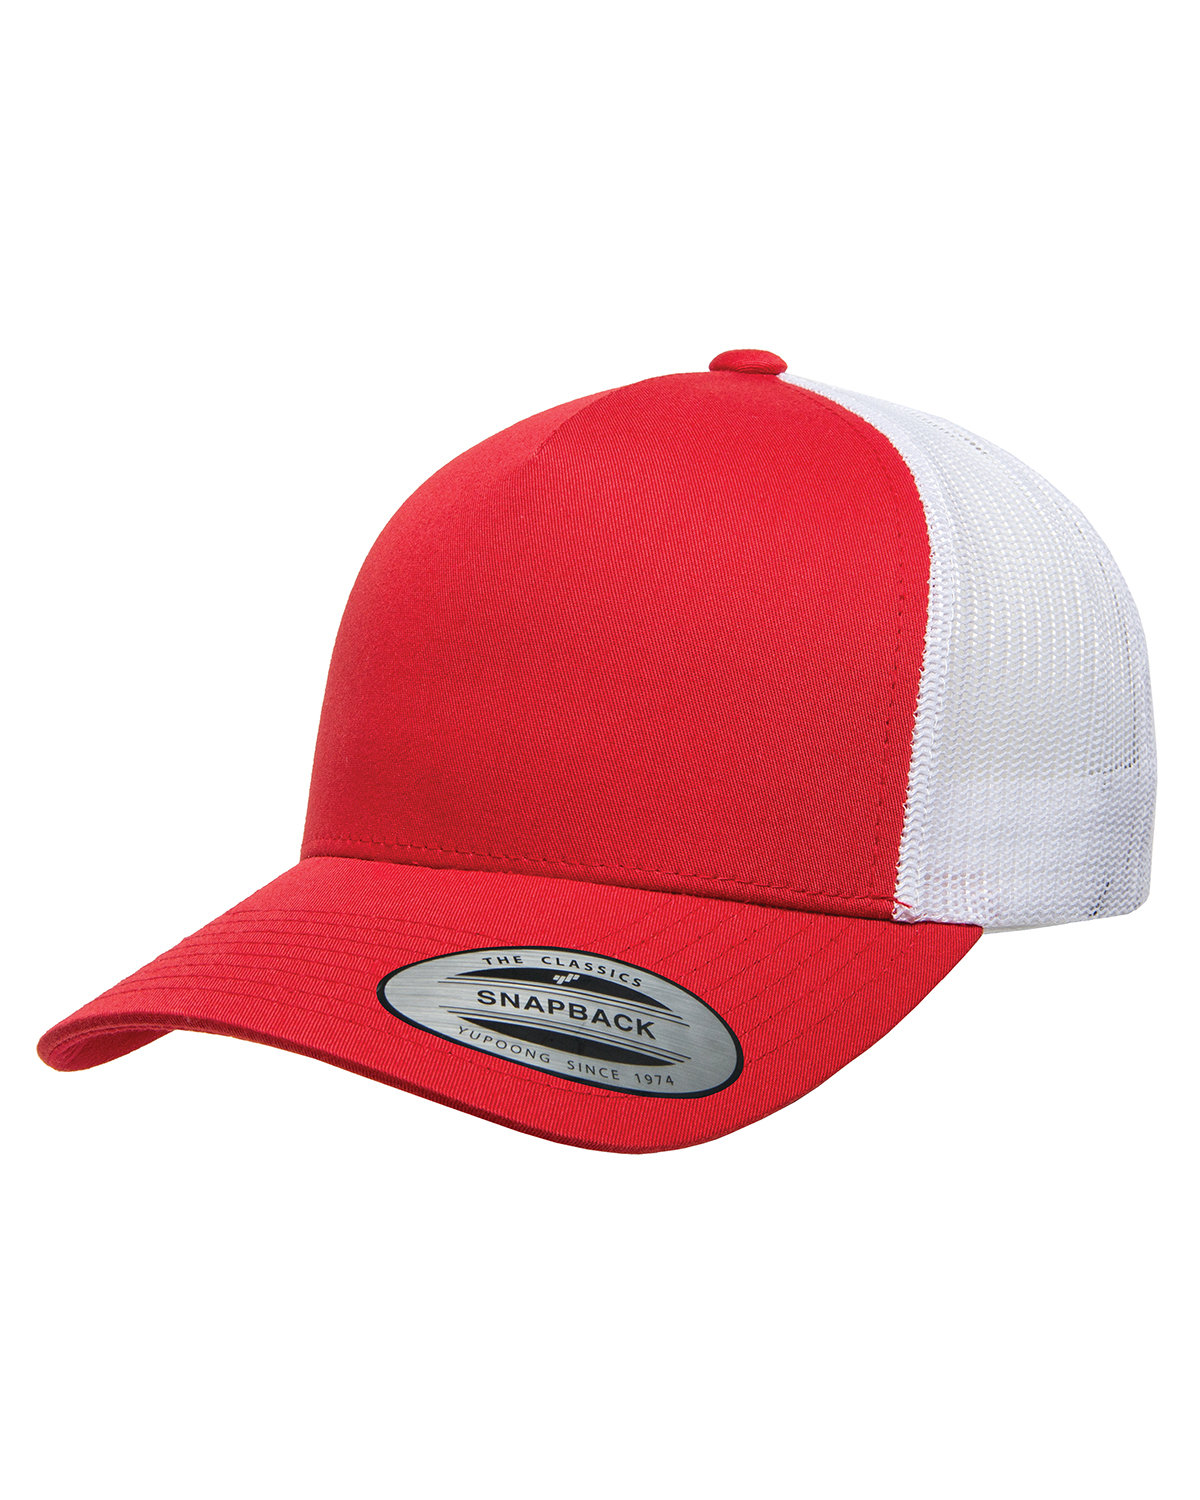 Yupoong Adult 5-Panel Retro Trucker Cap RED/ WHITE